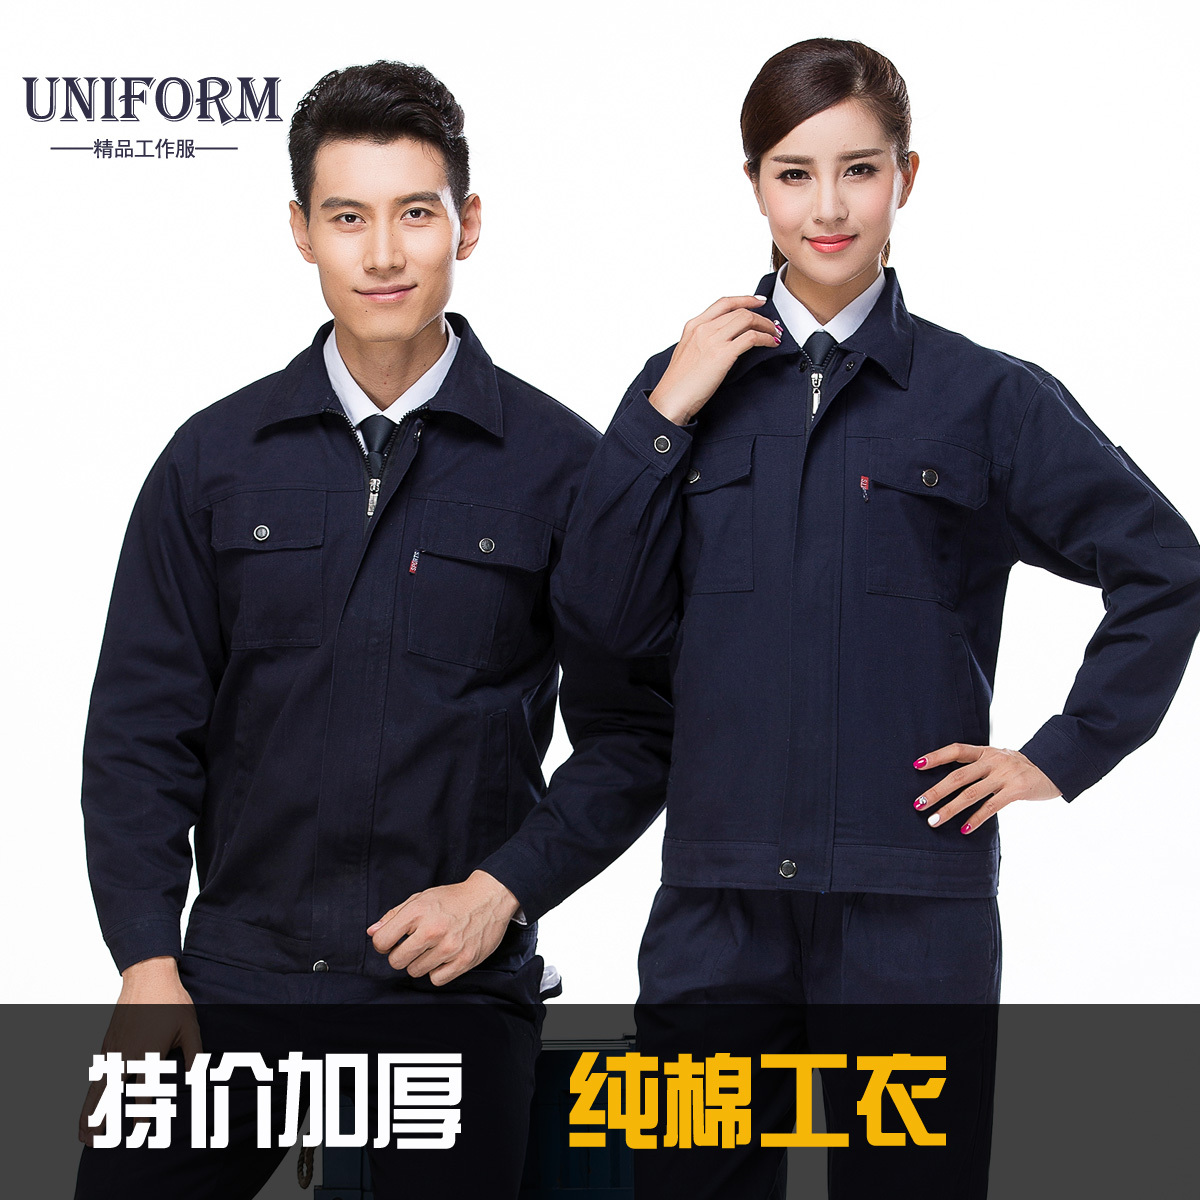 Set welding clothes mens engineering autumn and winter labor protection clothing printing electrician uniform overalls auto repair Hotel pure cotton